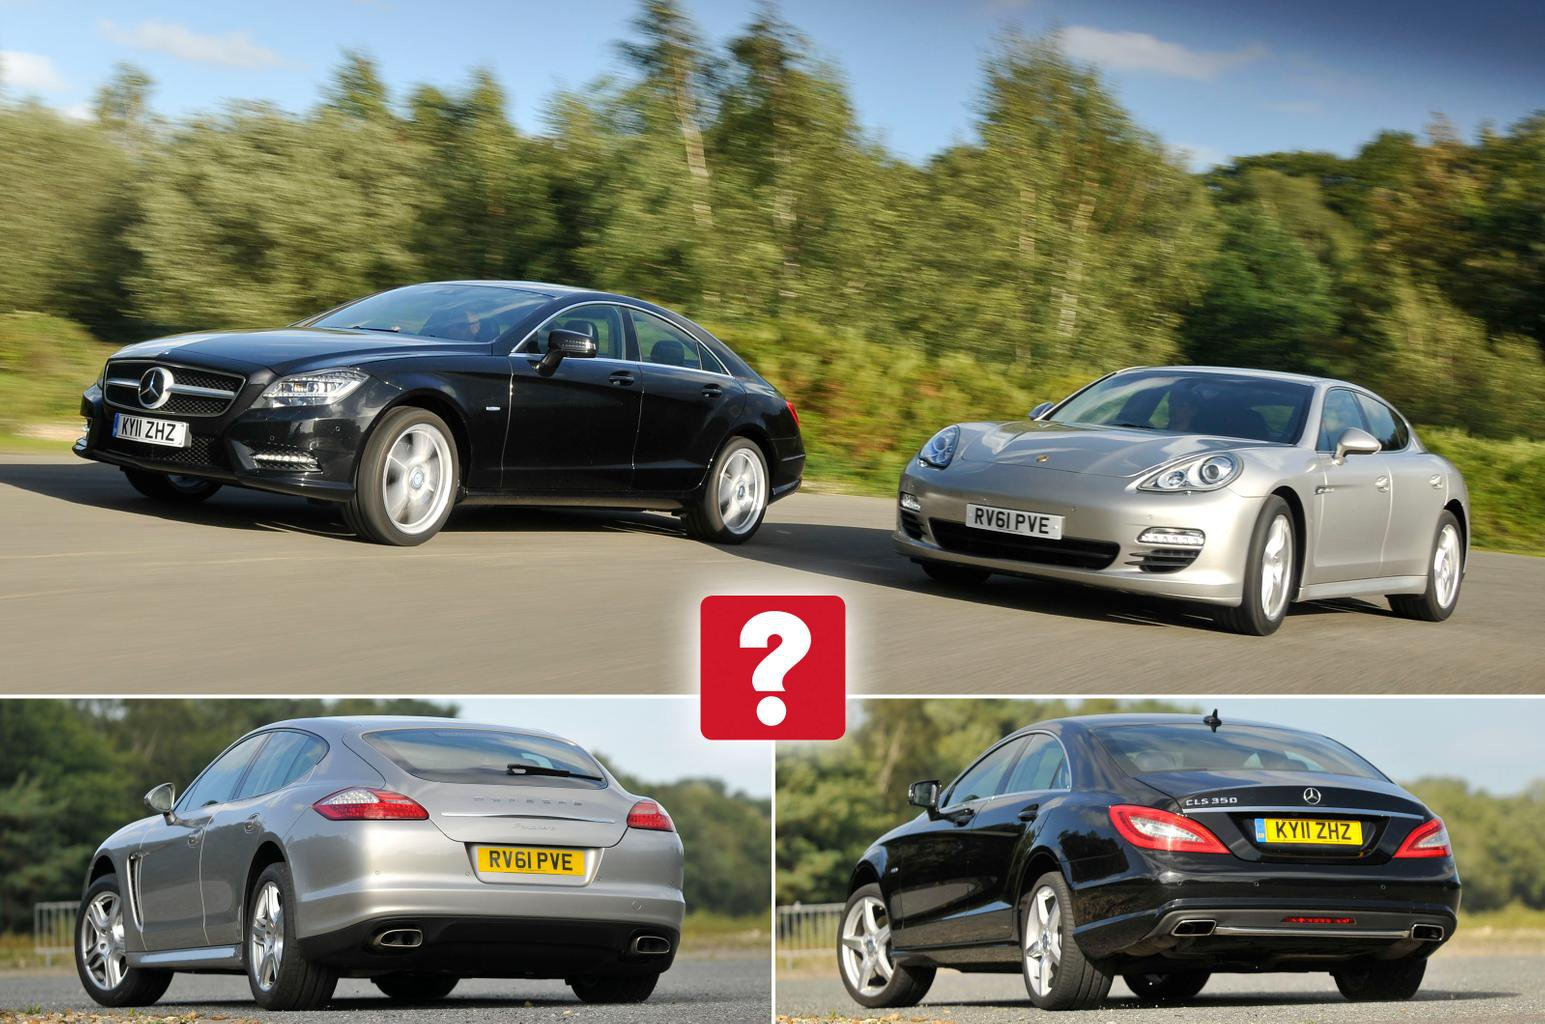 Used Mercedes Benz Cls Vs Porsche Panamera